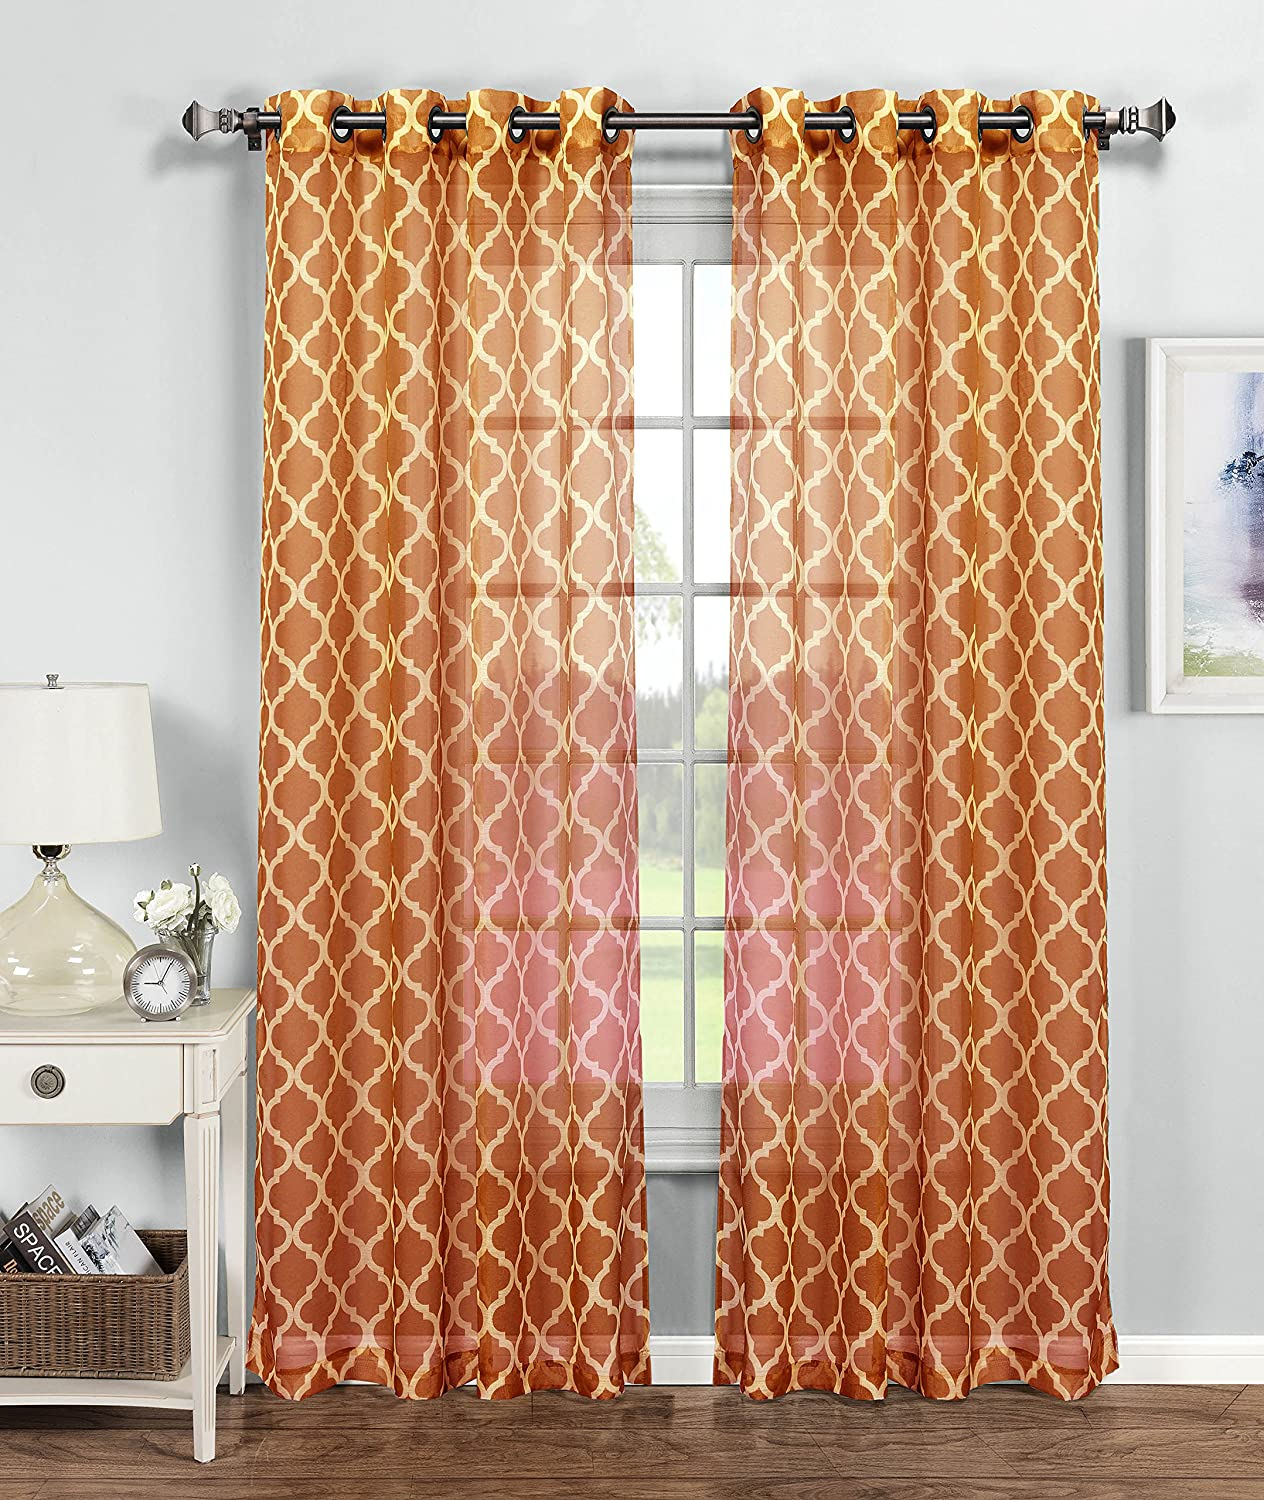 Window Elements Quatrefoil Printed Sheer Extra Wide 54 x 84 in. Grommet Curtain Panel, Orange